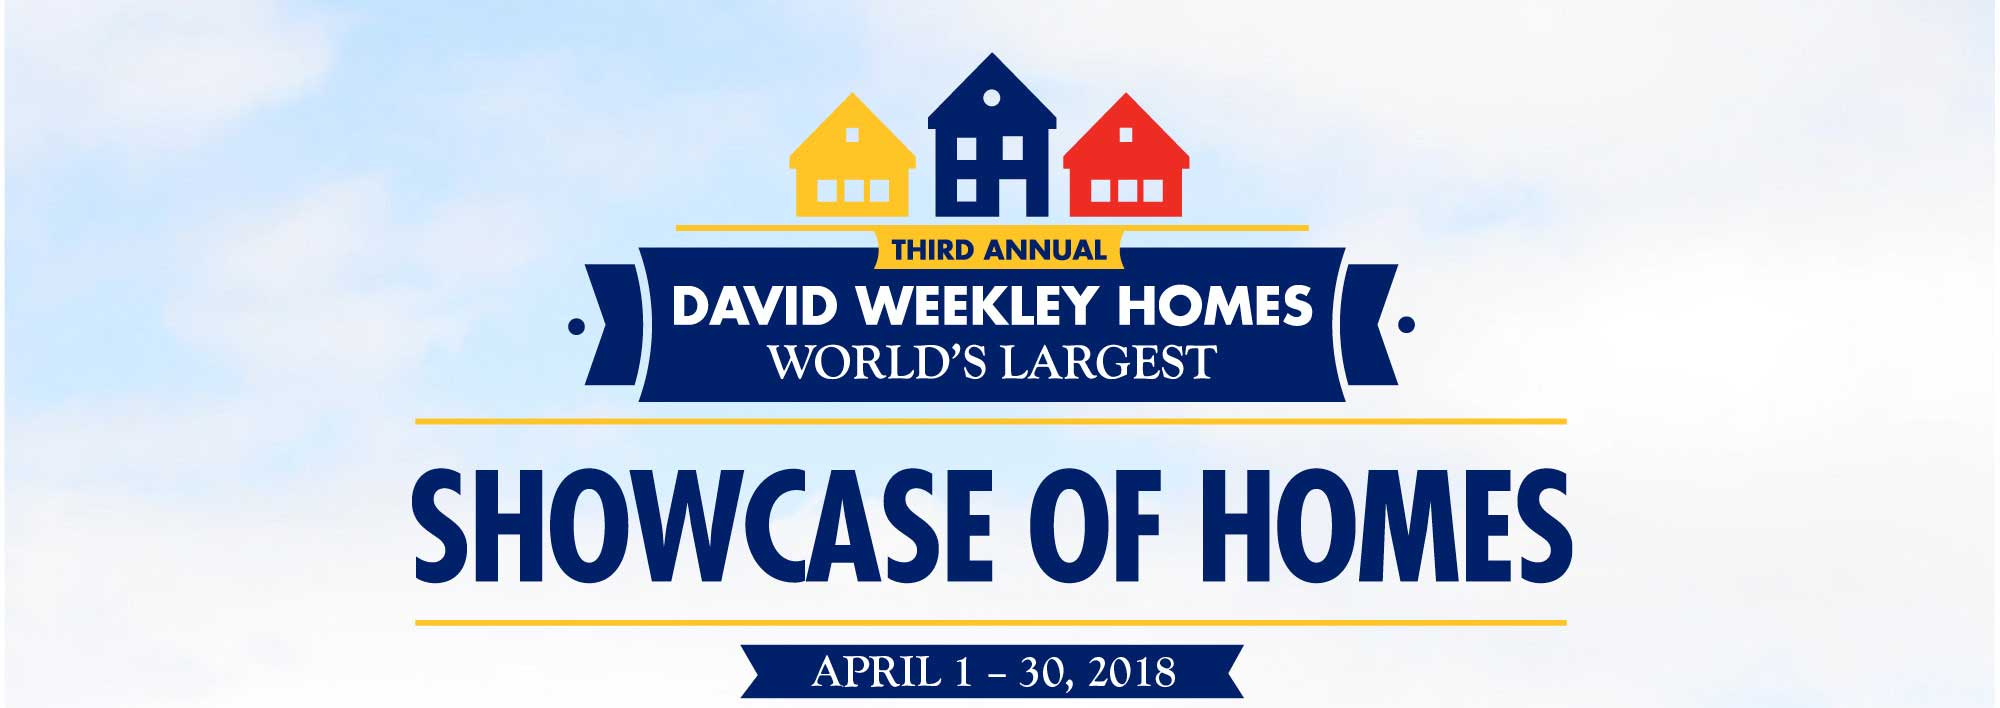 David Weekley Homes World's Largest Showcase of Homes